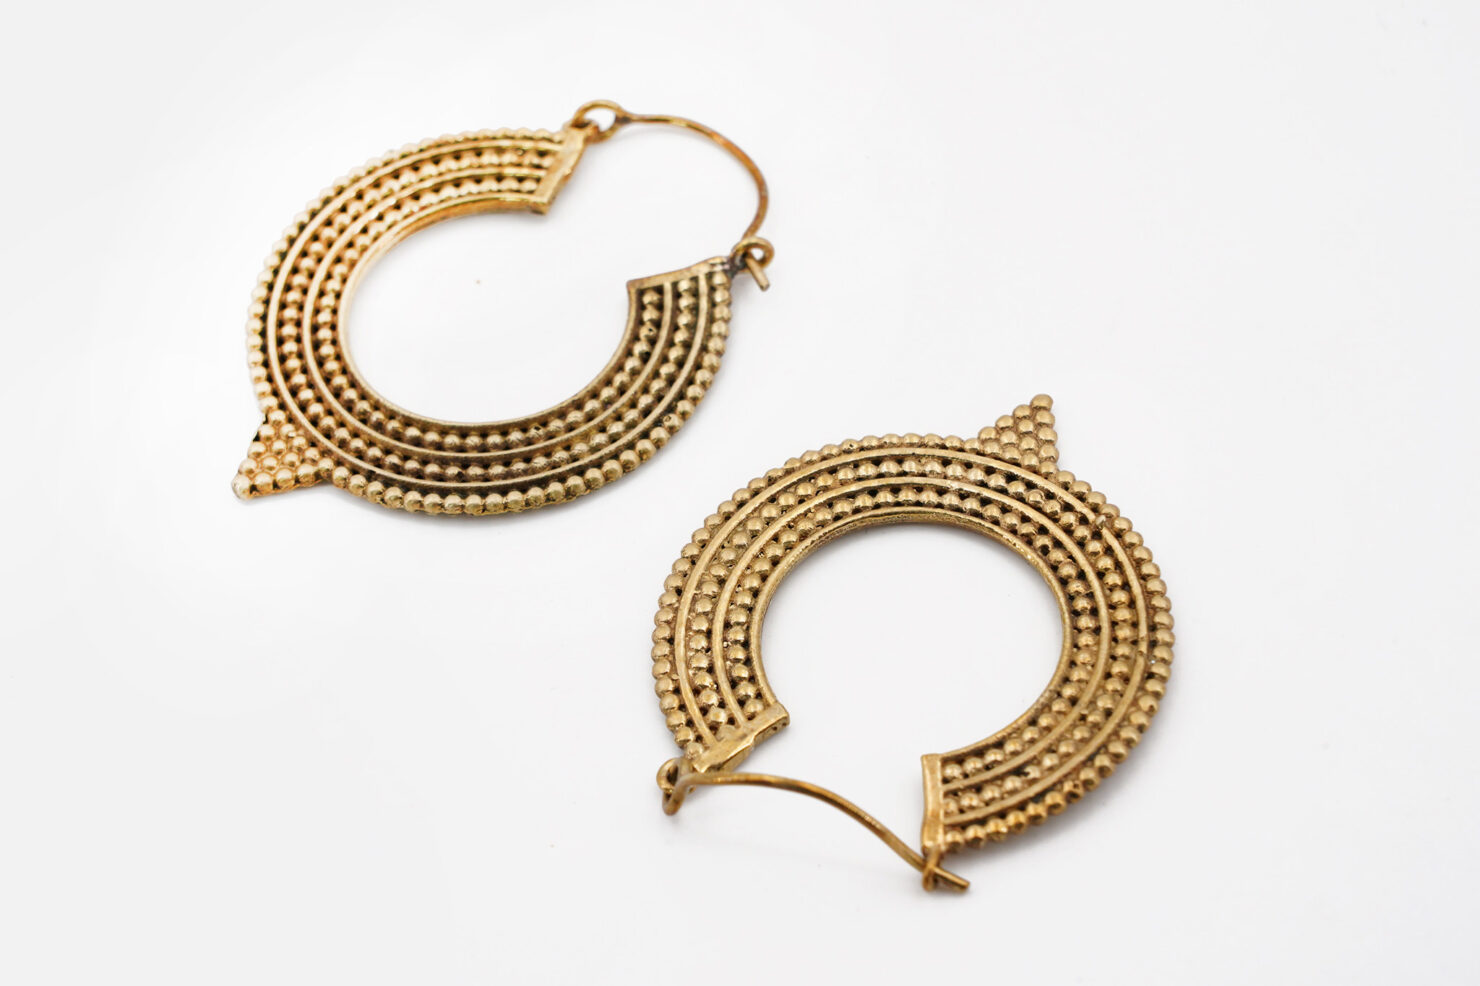 INDIAN BRASS EARRINGS - PRINCIPESSE E PIRATI